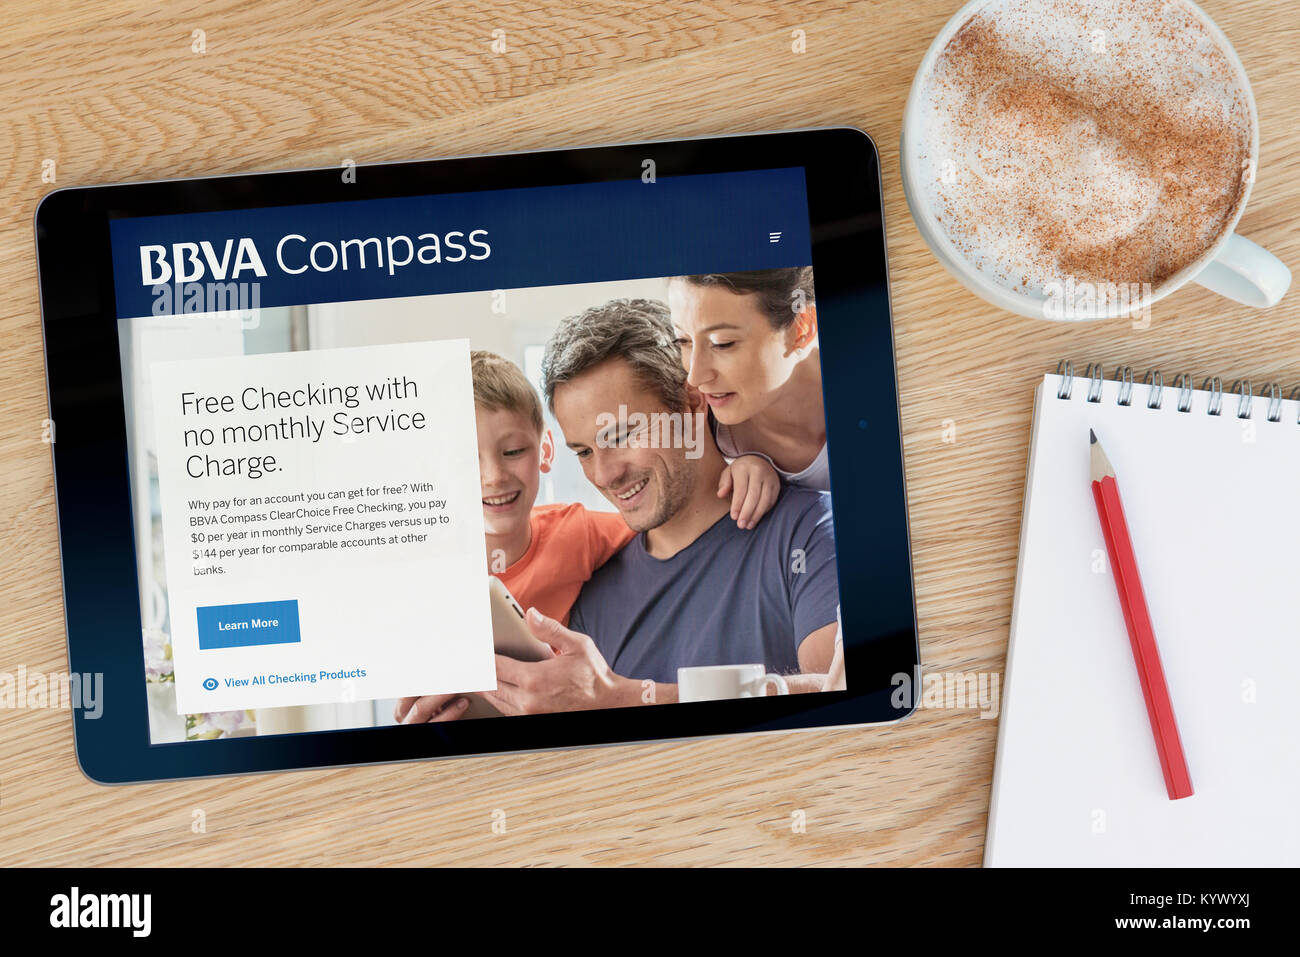 The BBVA Compass website on an iPad tablet, on a wooden table beside a notepad, pencil and cup of coffee (Editorial - Stock Image